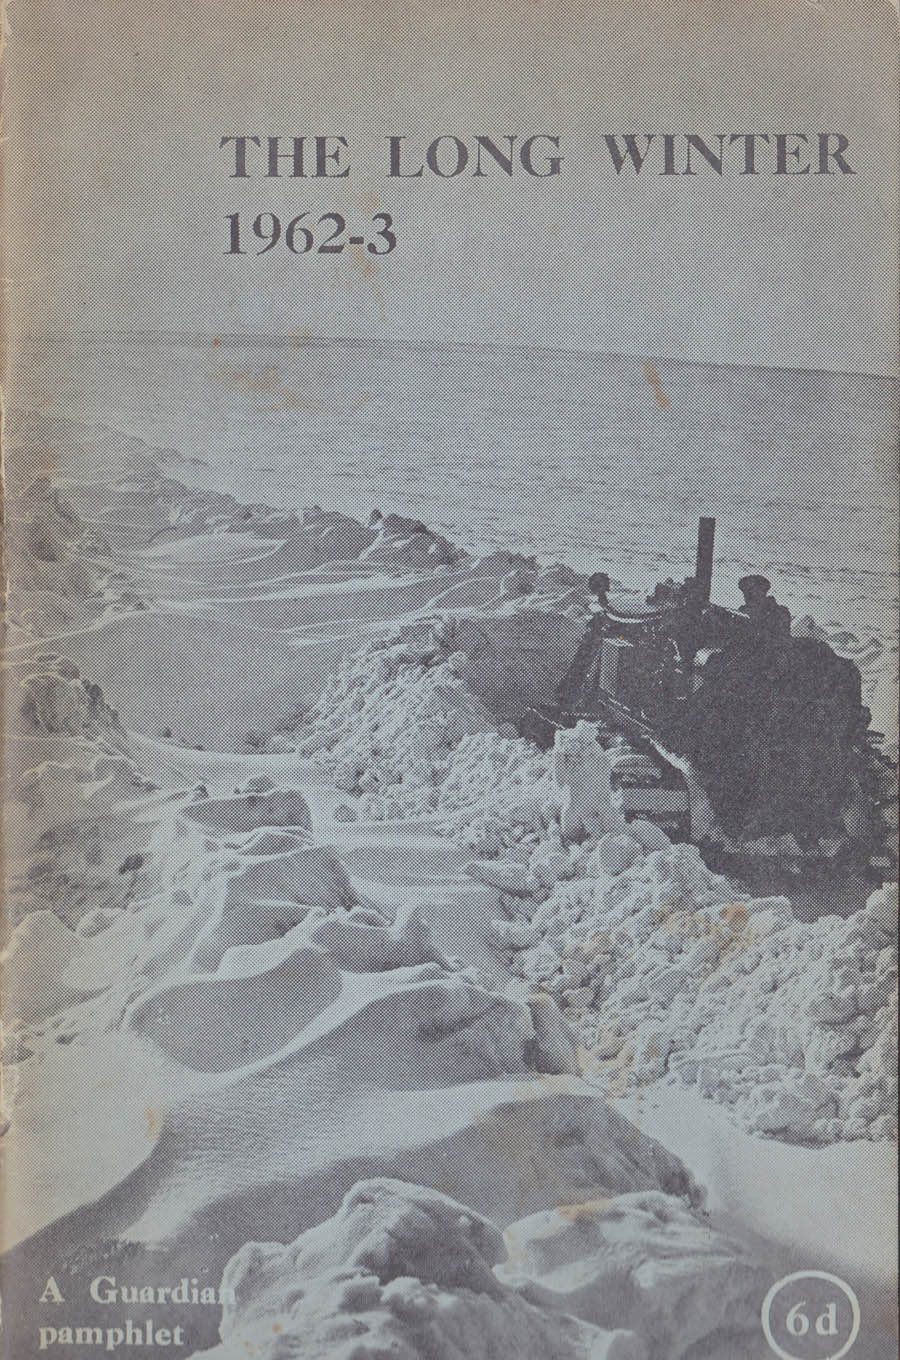 The Long Winter 1962-63 (Guardian pamphlet)